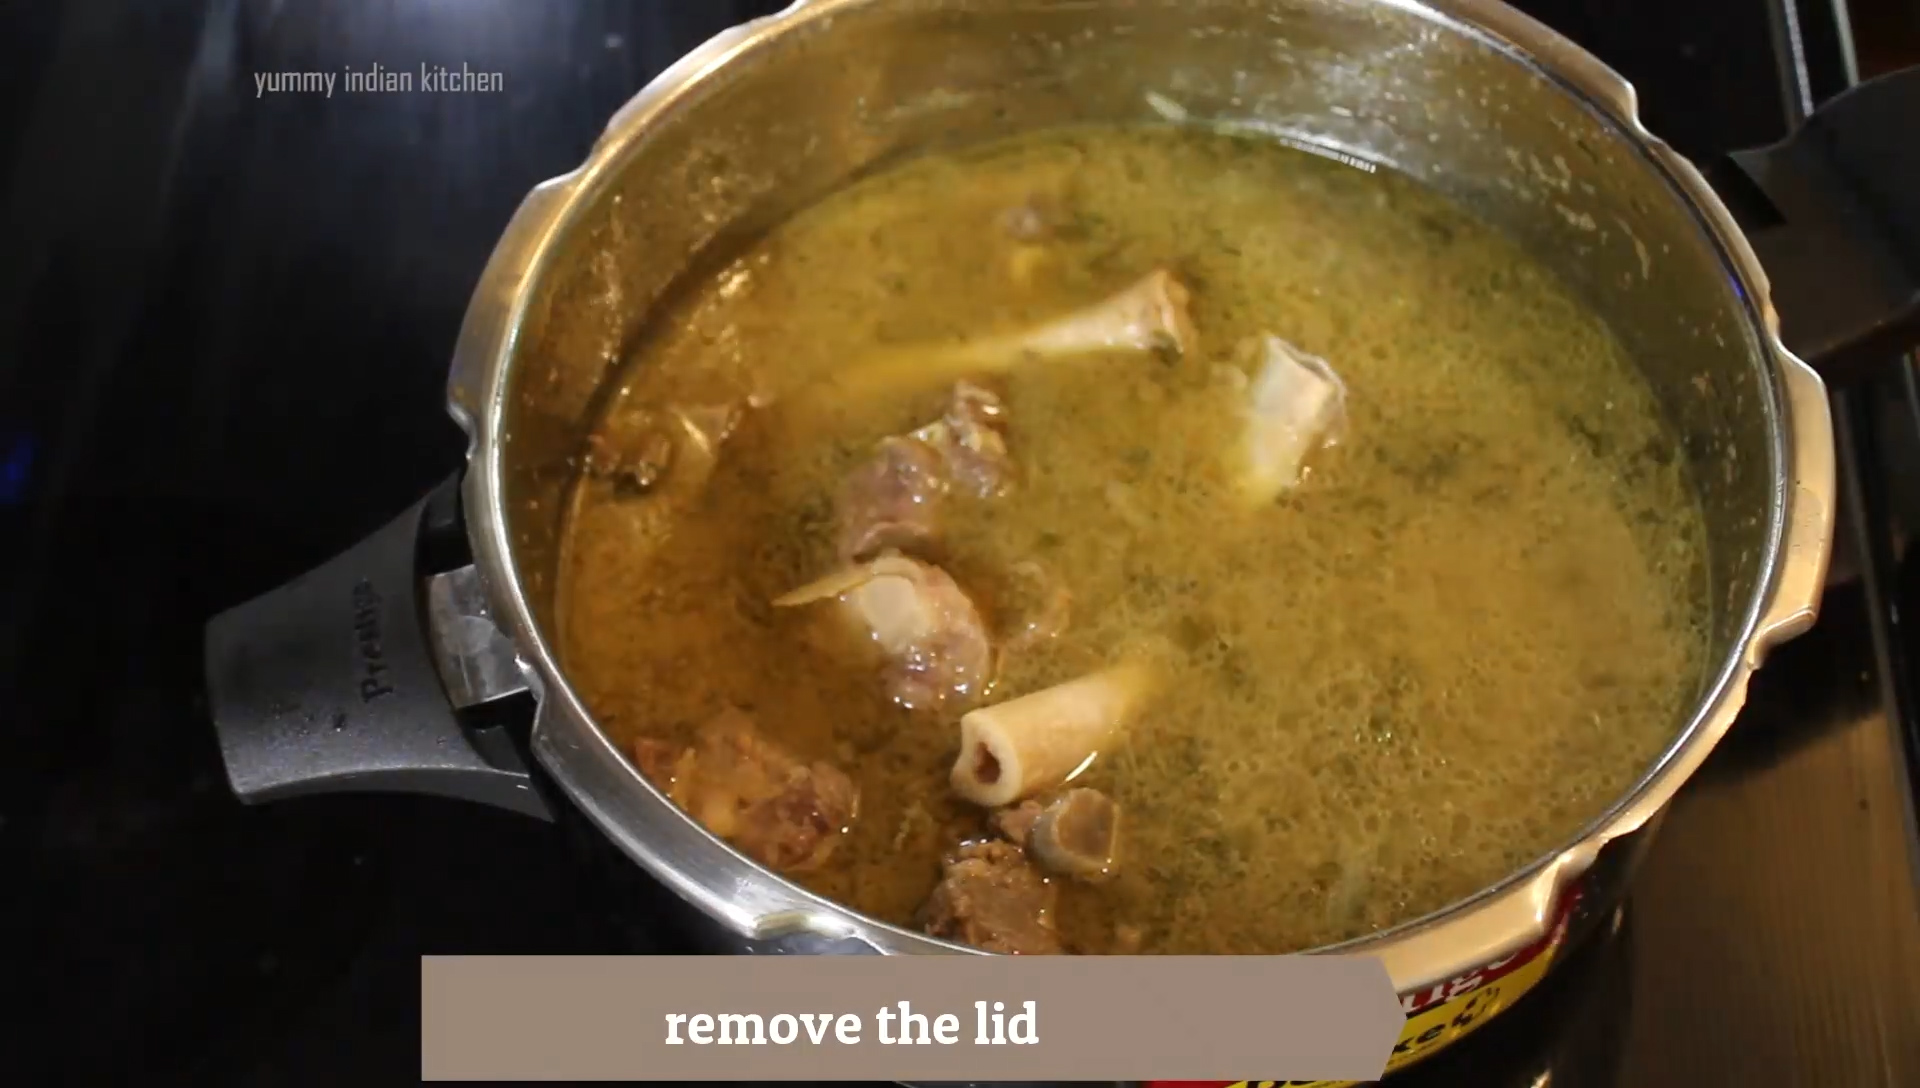 lid removed after cooking the mutton